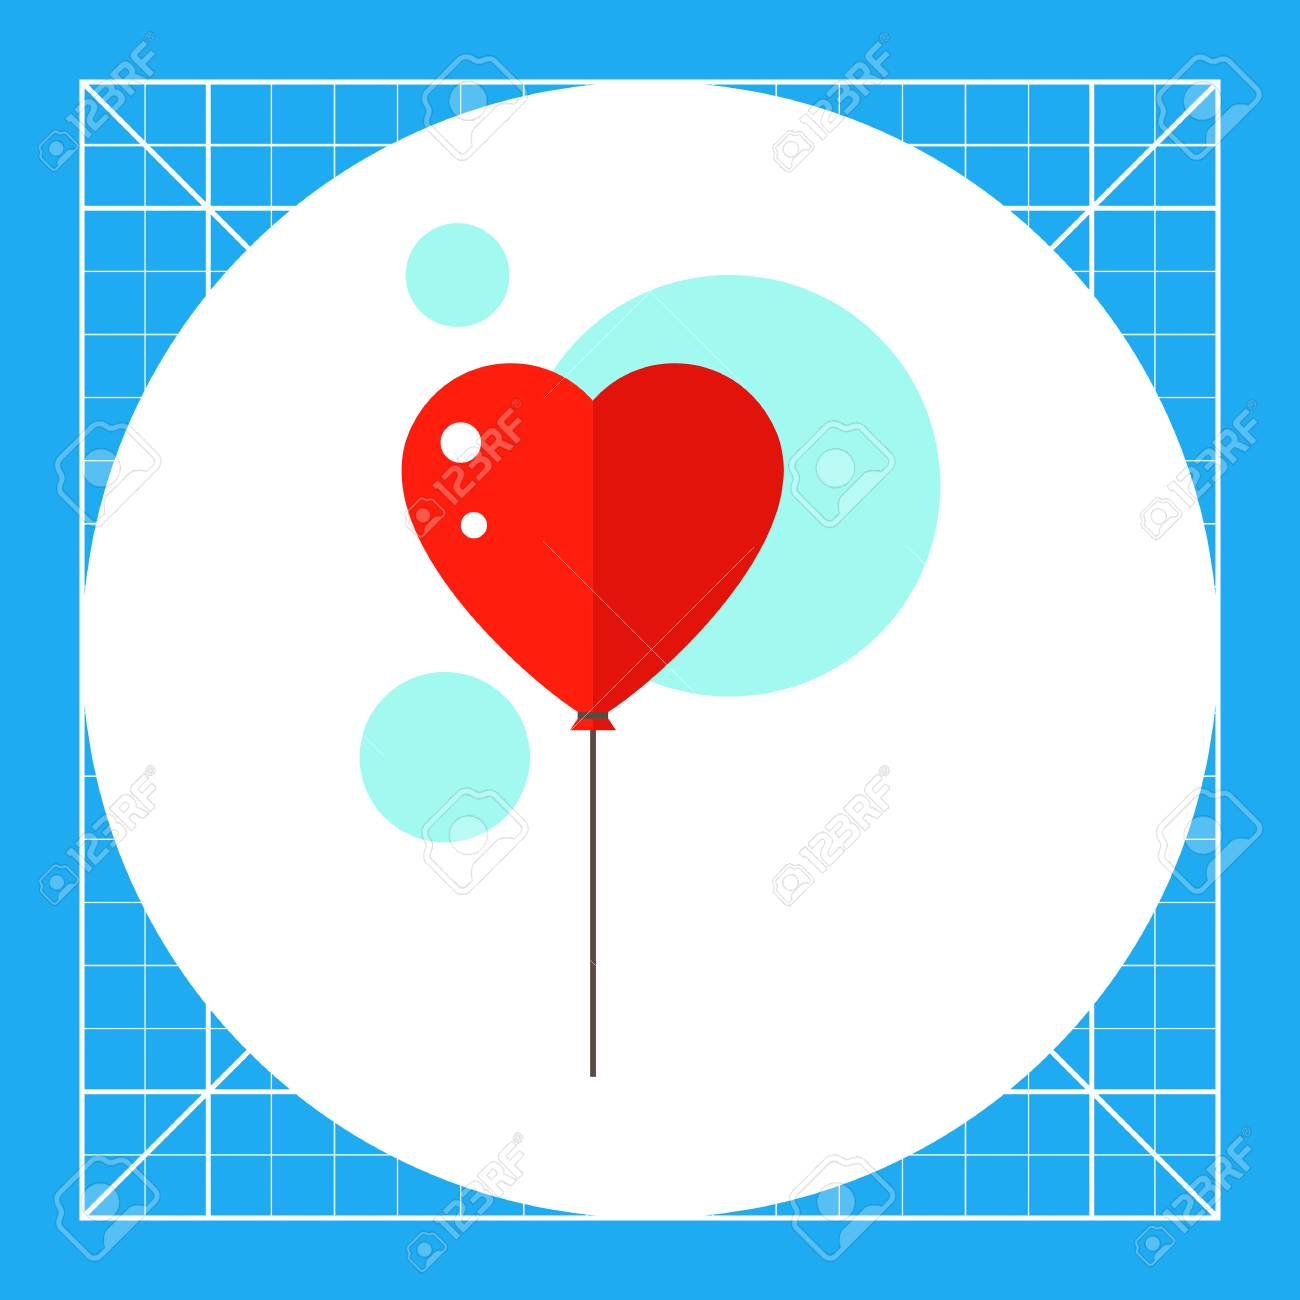 Heart Shaped Balloon Inflatable Bright Symbolic Heart Concept